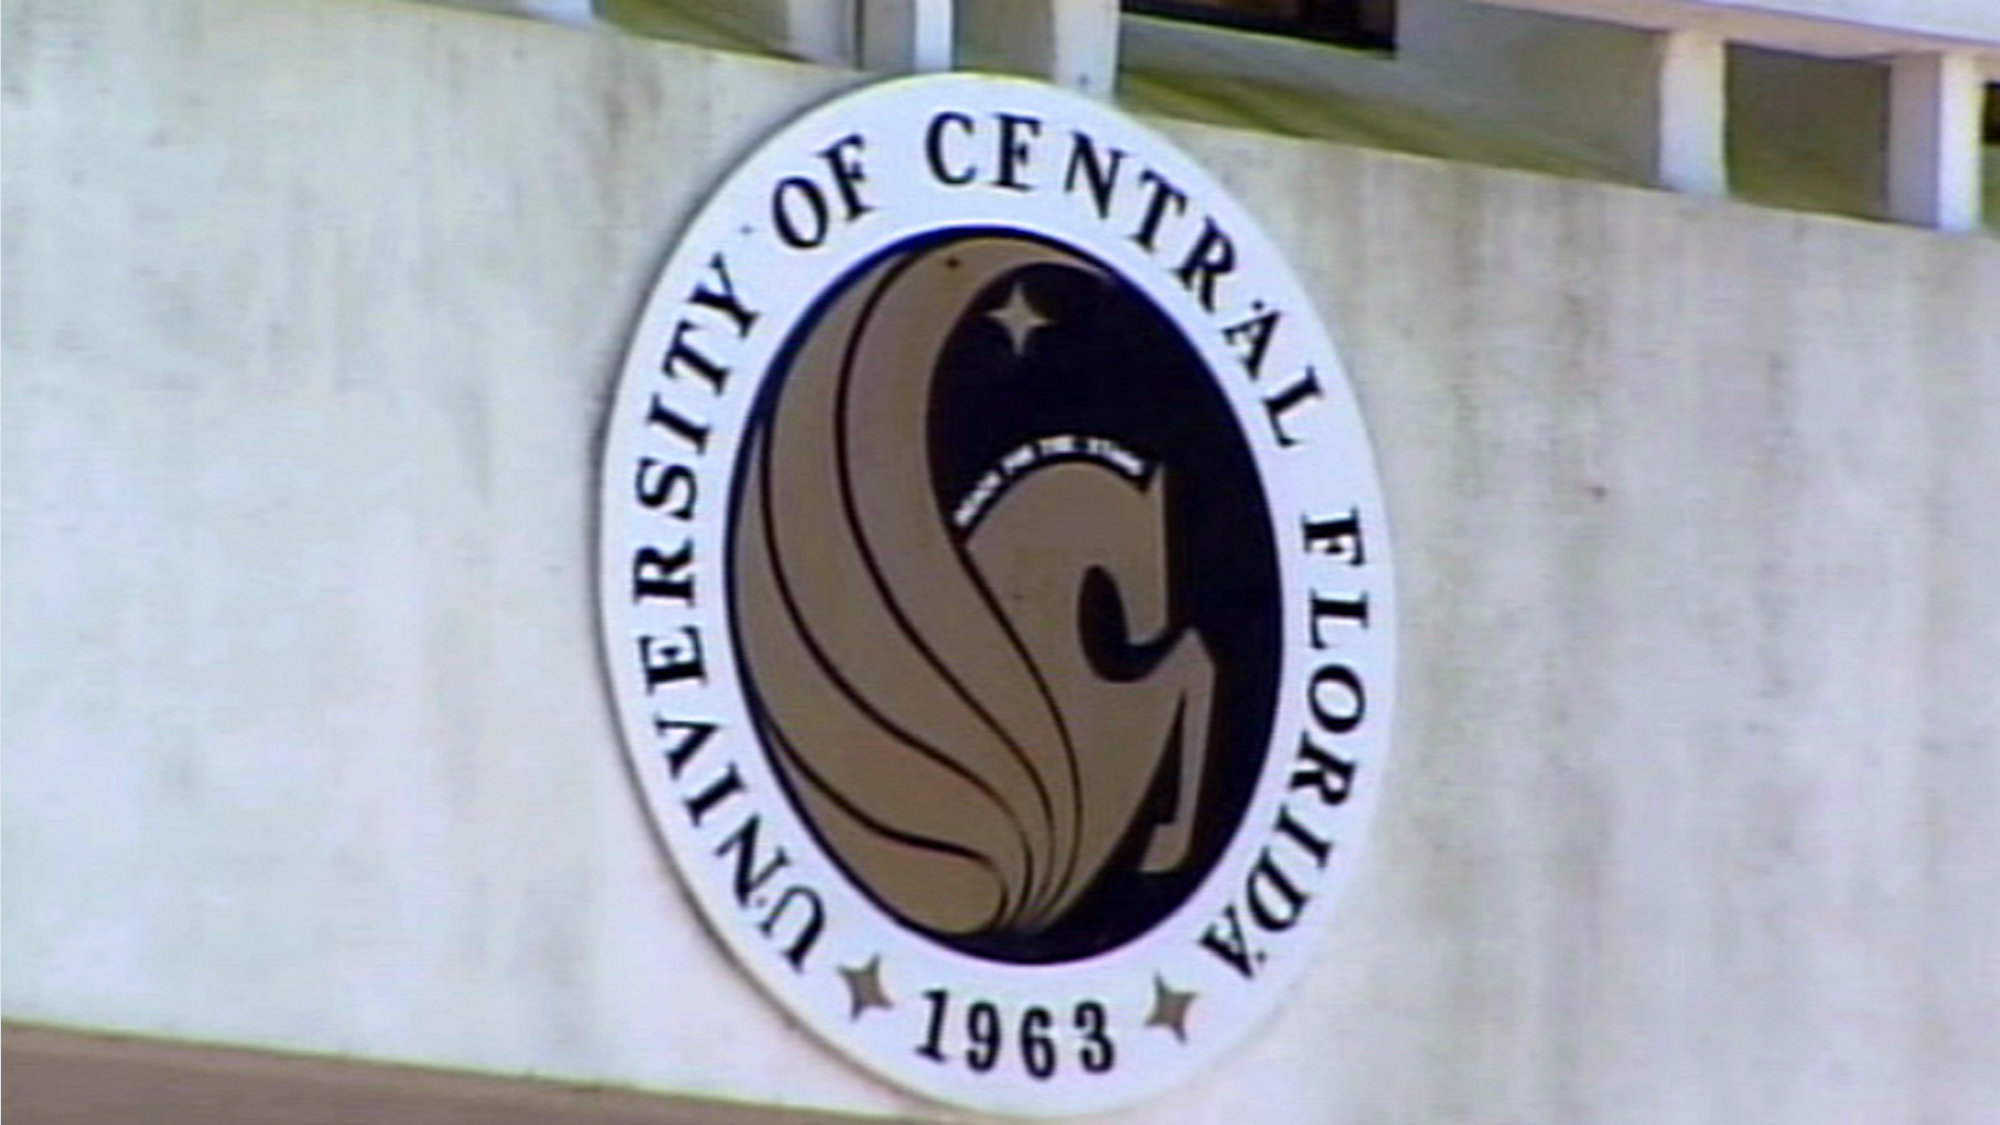 UCF Misused Funds Report Demands University Oversight Reform